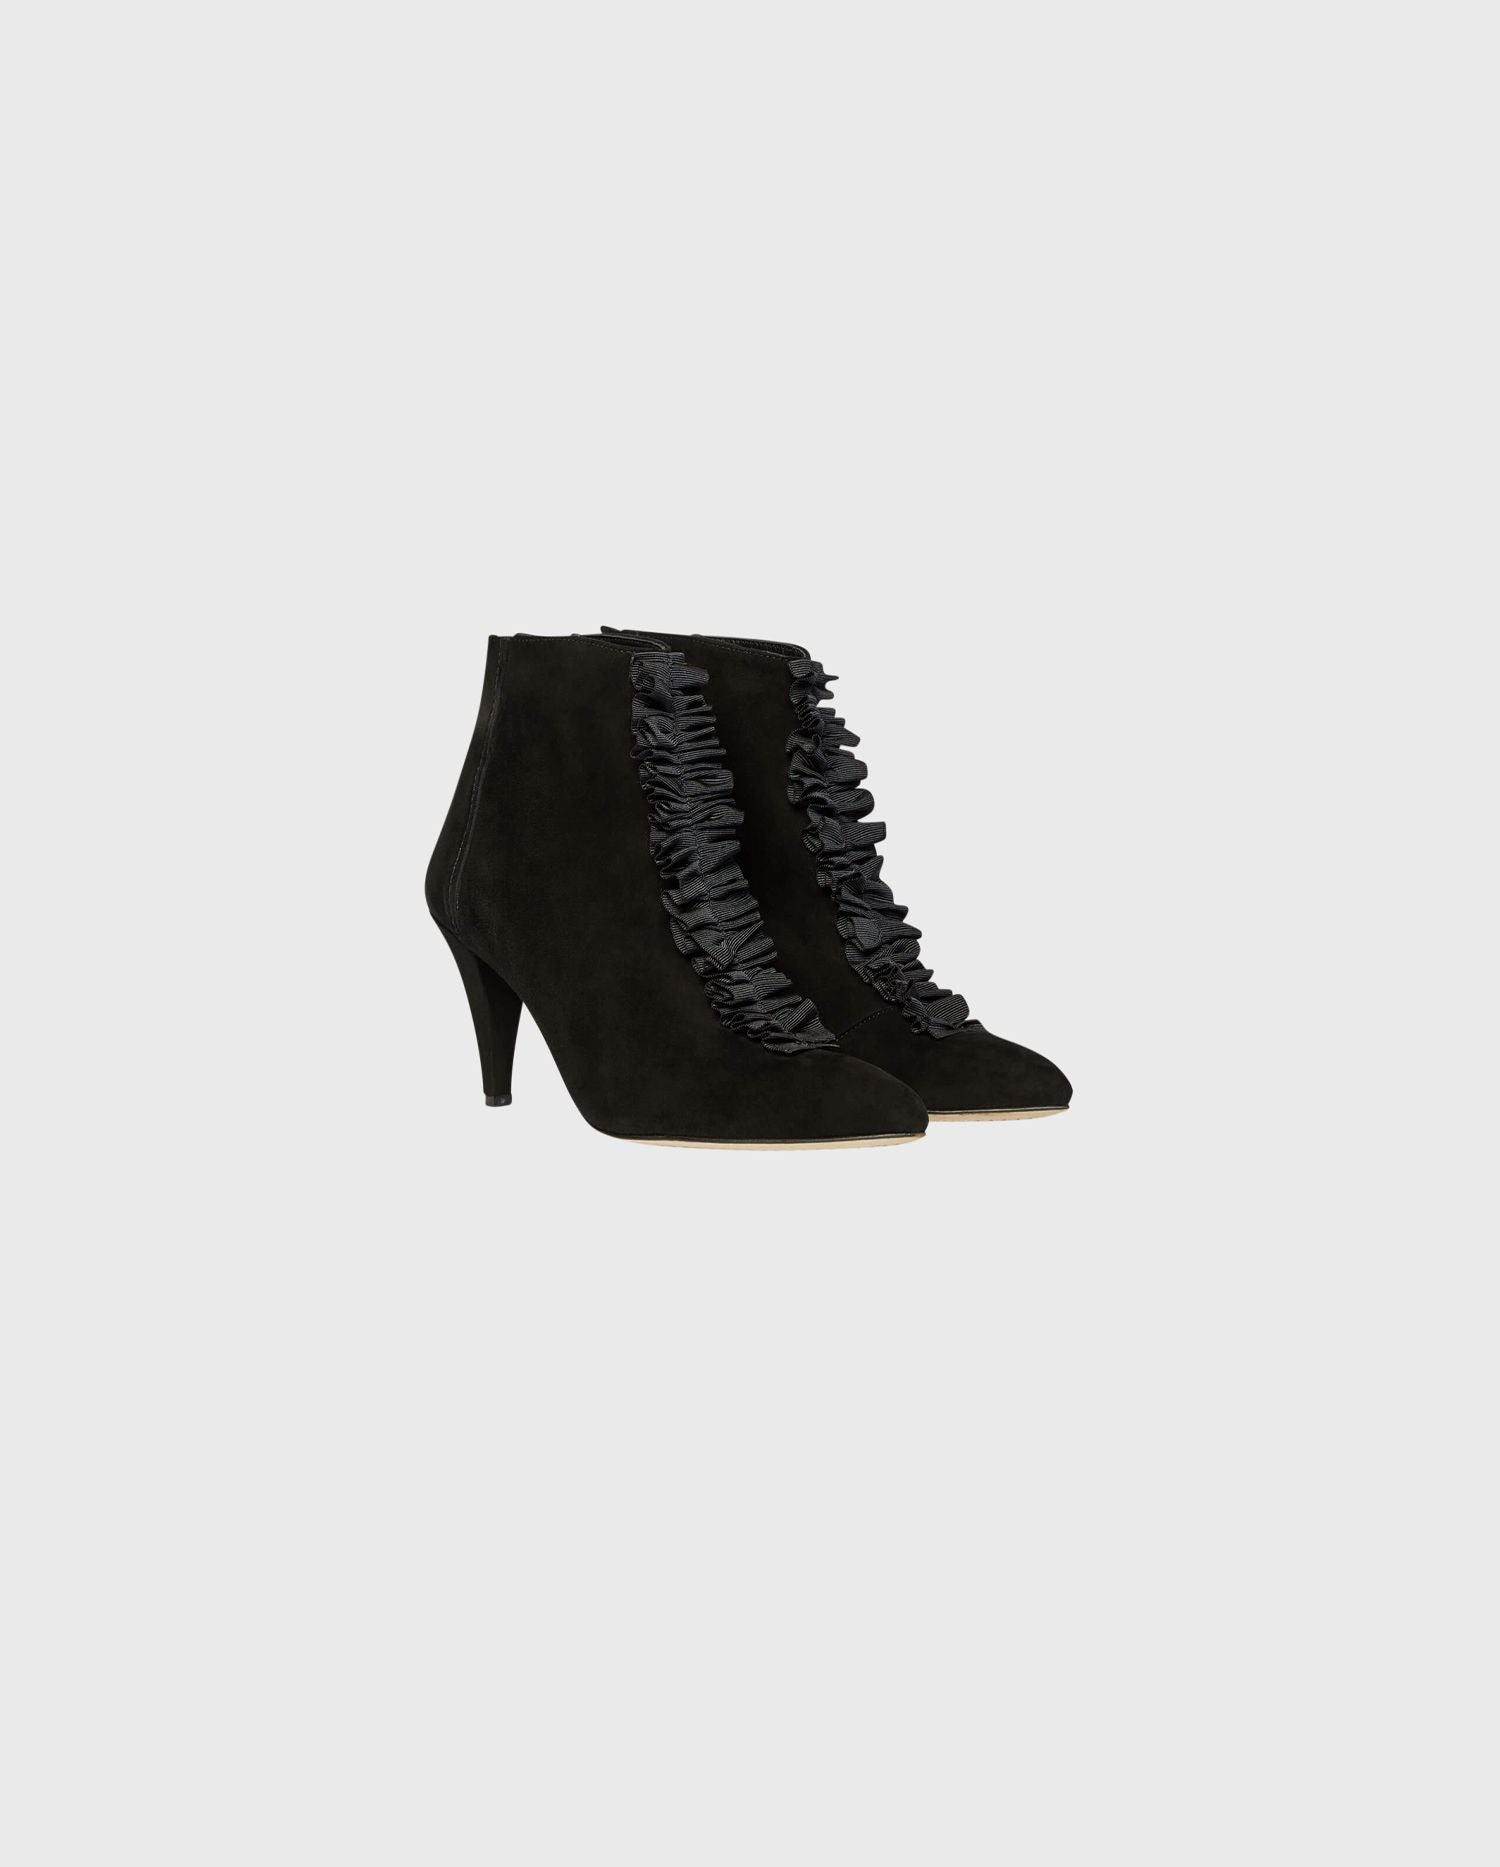 Comfortable and chic is on the table this season with the GWEN suede ruffle bootie